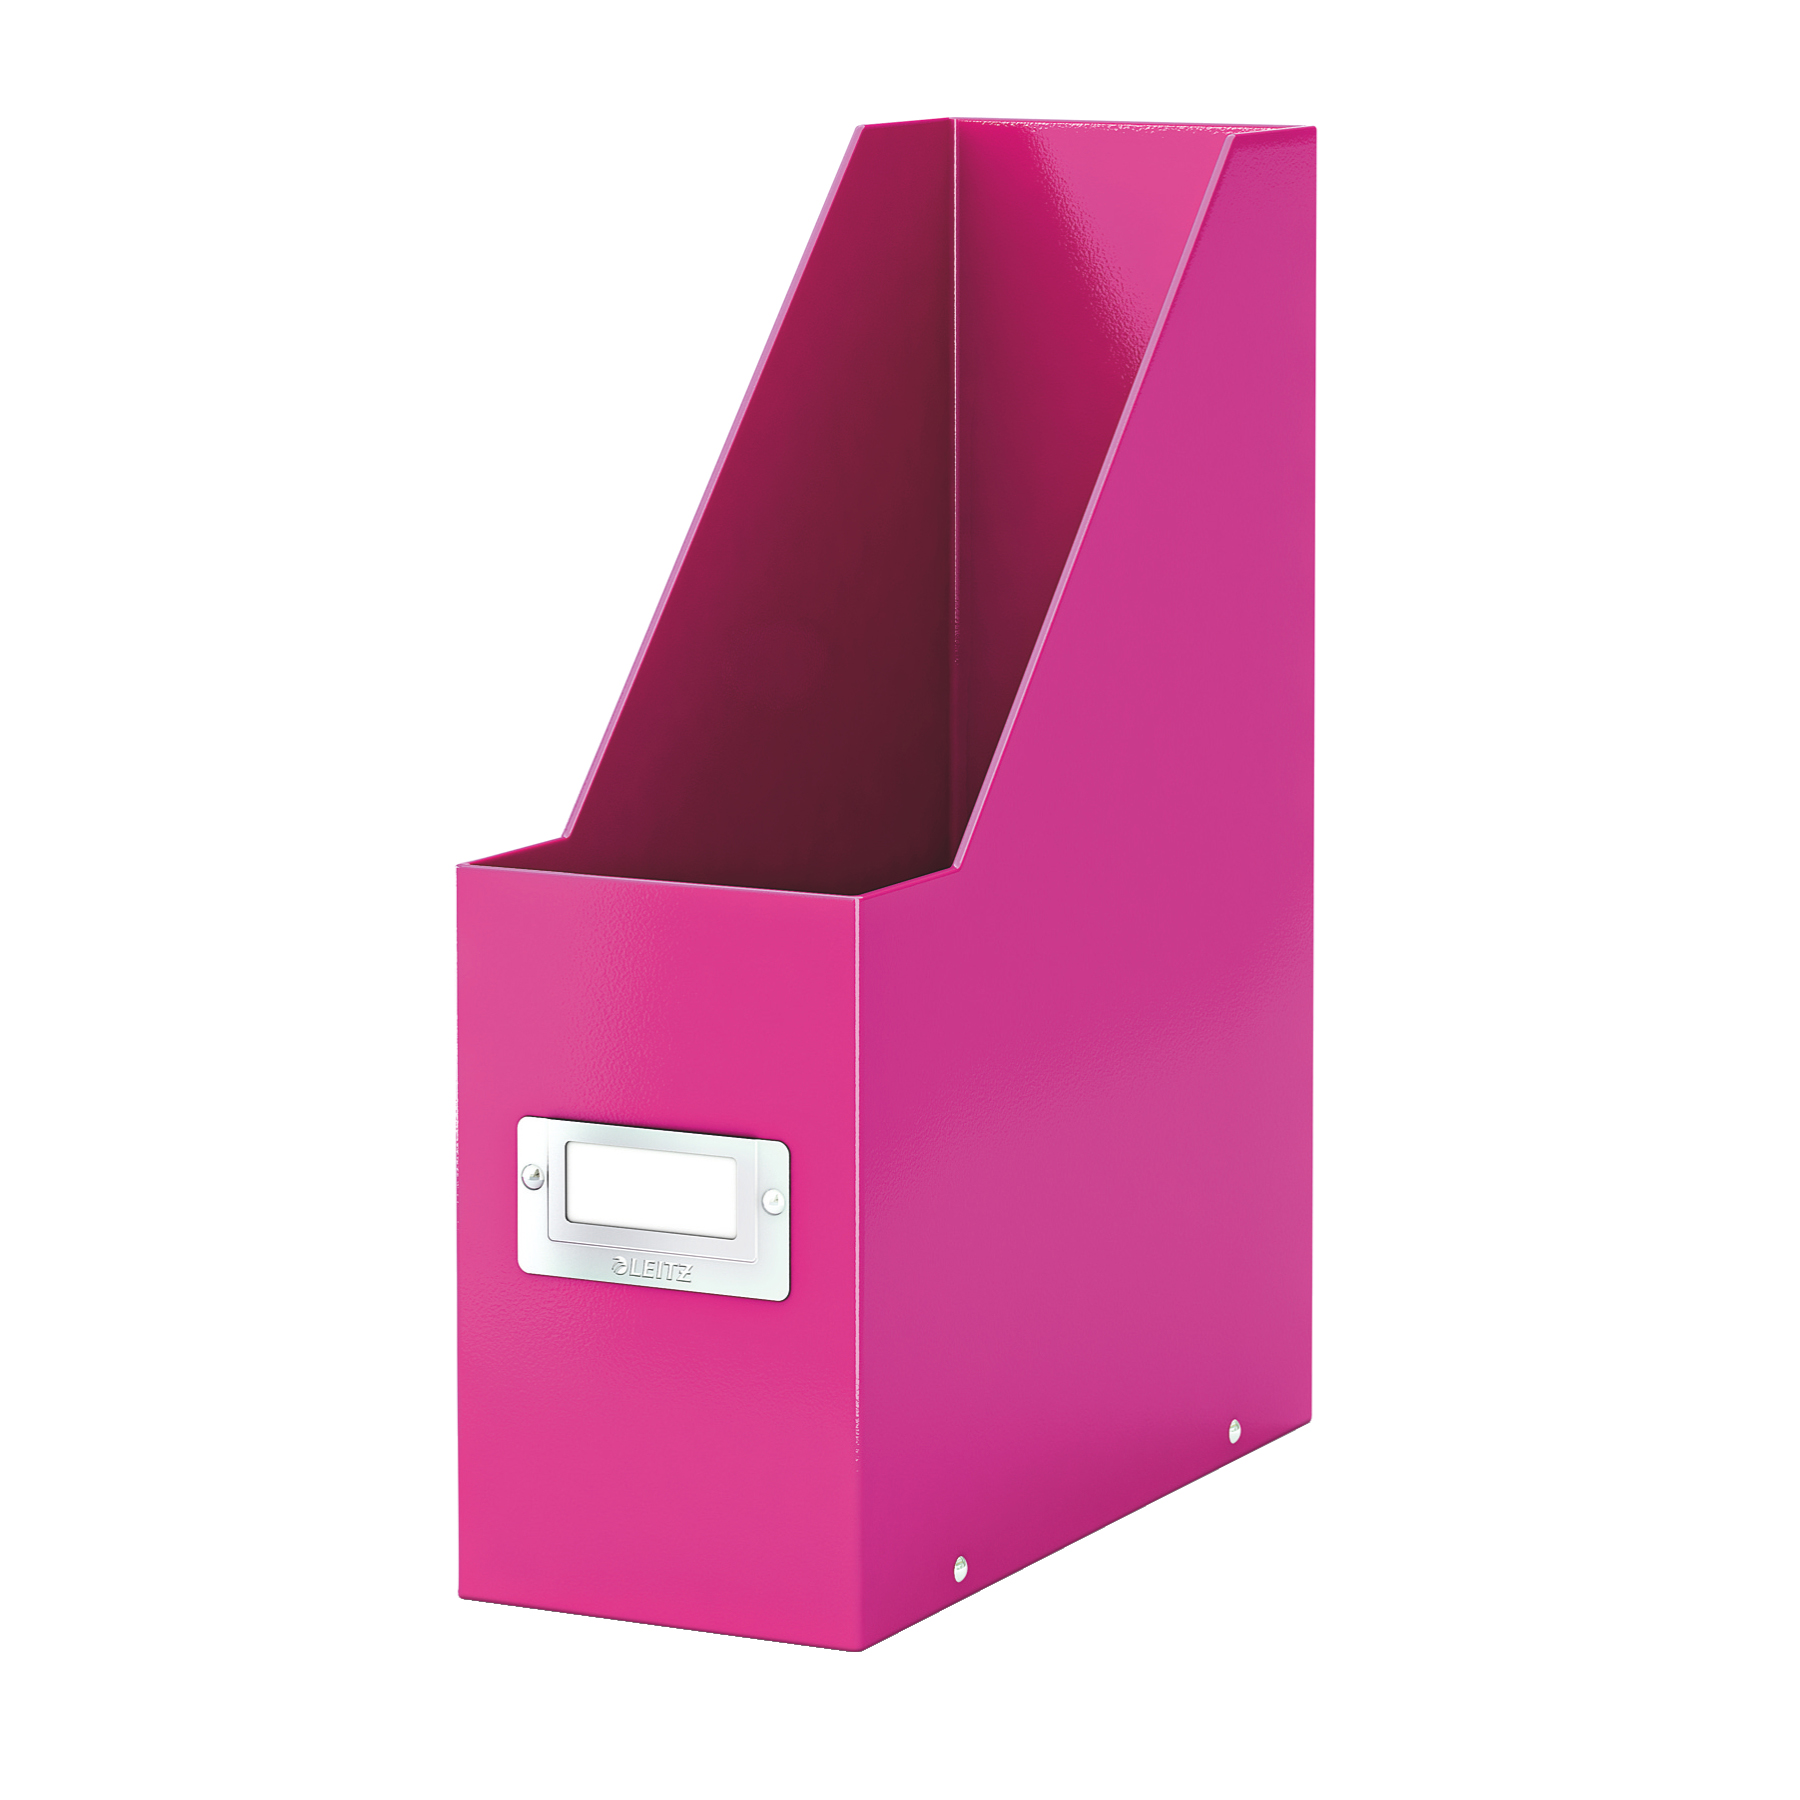 Literature rack Leitz Click & Store Magazine File Collapsible Pink Ref 60470023